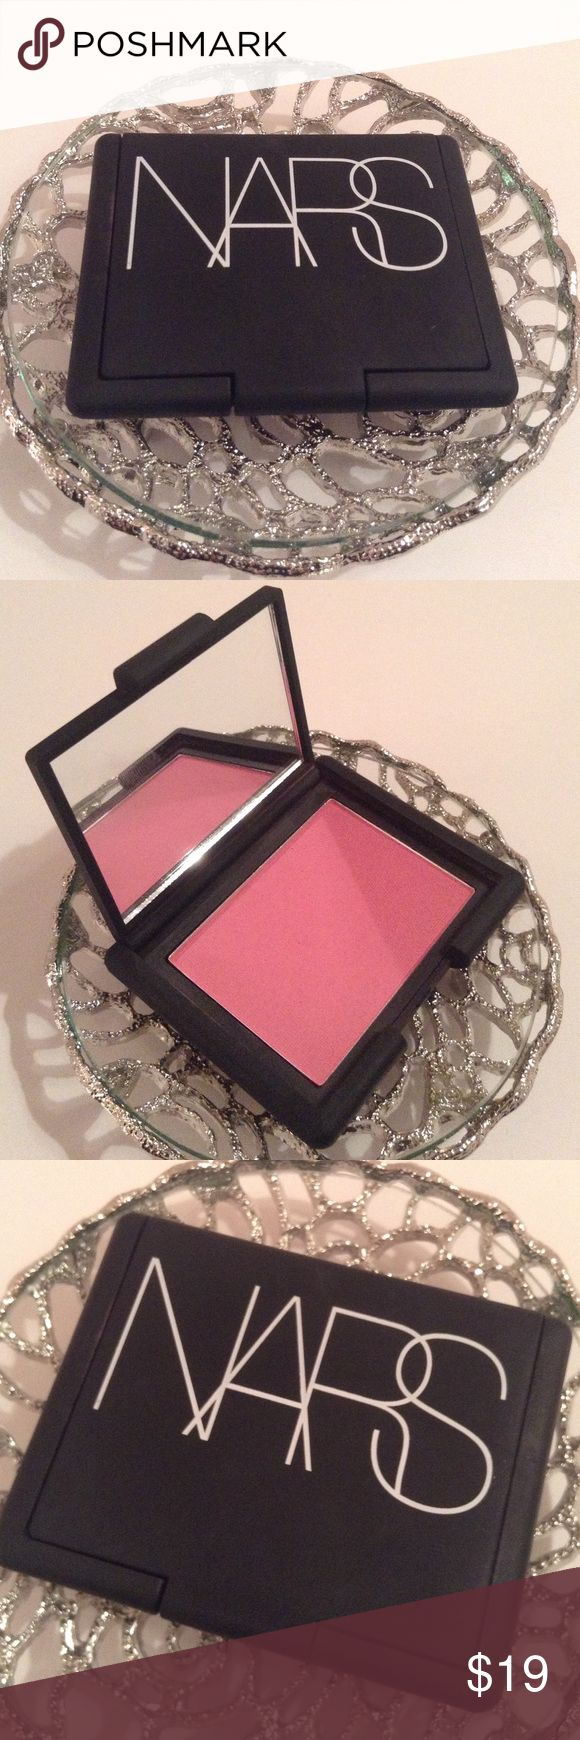 NARS blush in MATA HARI This beautiful blush was purchased at Sephora and was only used once or twice. Looks new!! MATA HARI is a universally flattering color. This color is similar to what the Kardashians use and is similar to a limited edition Mac rose blush. NARS Makeup Blush